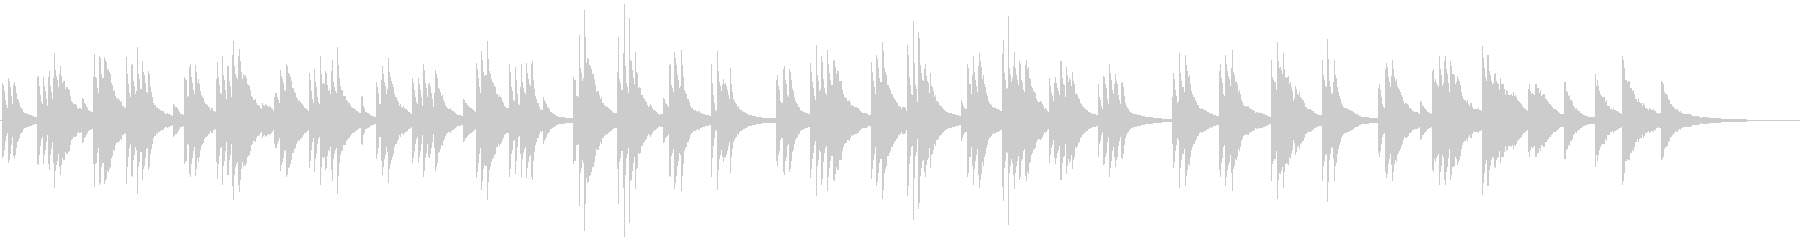 Piano ballad to play with a touch that looks like's unreproduced waveform